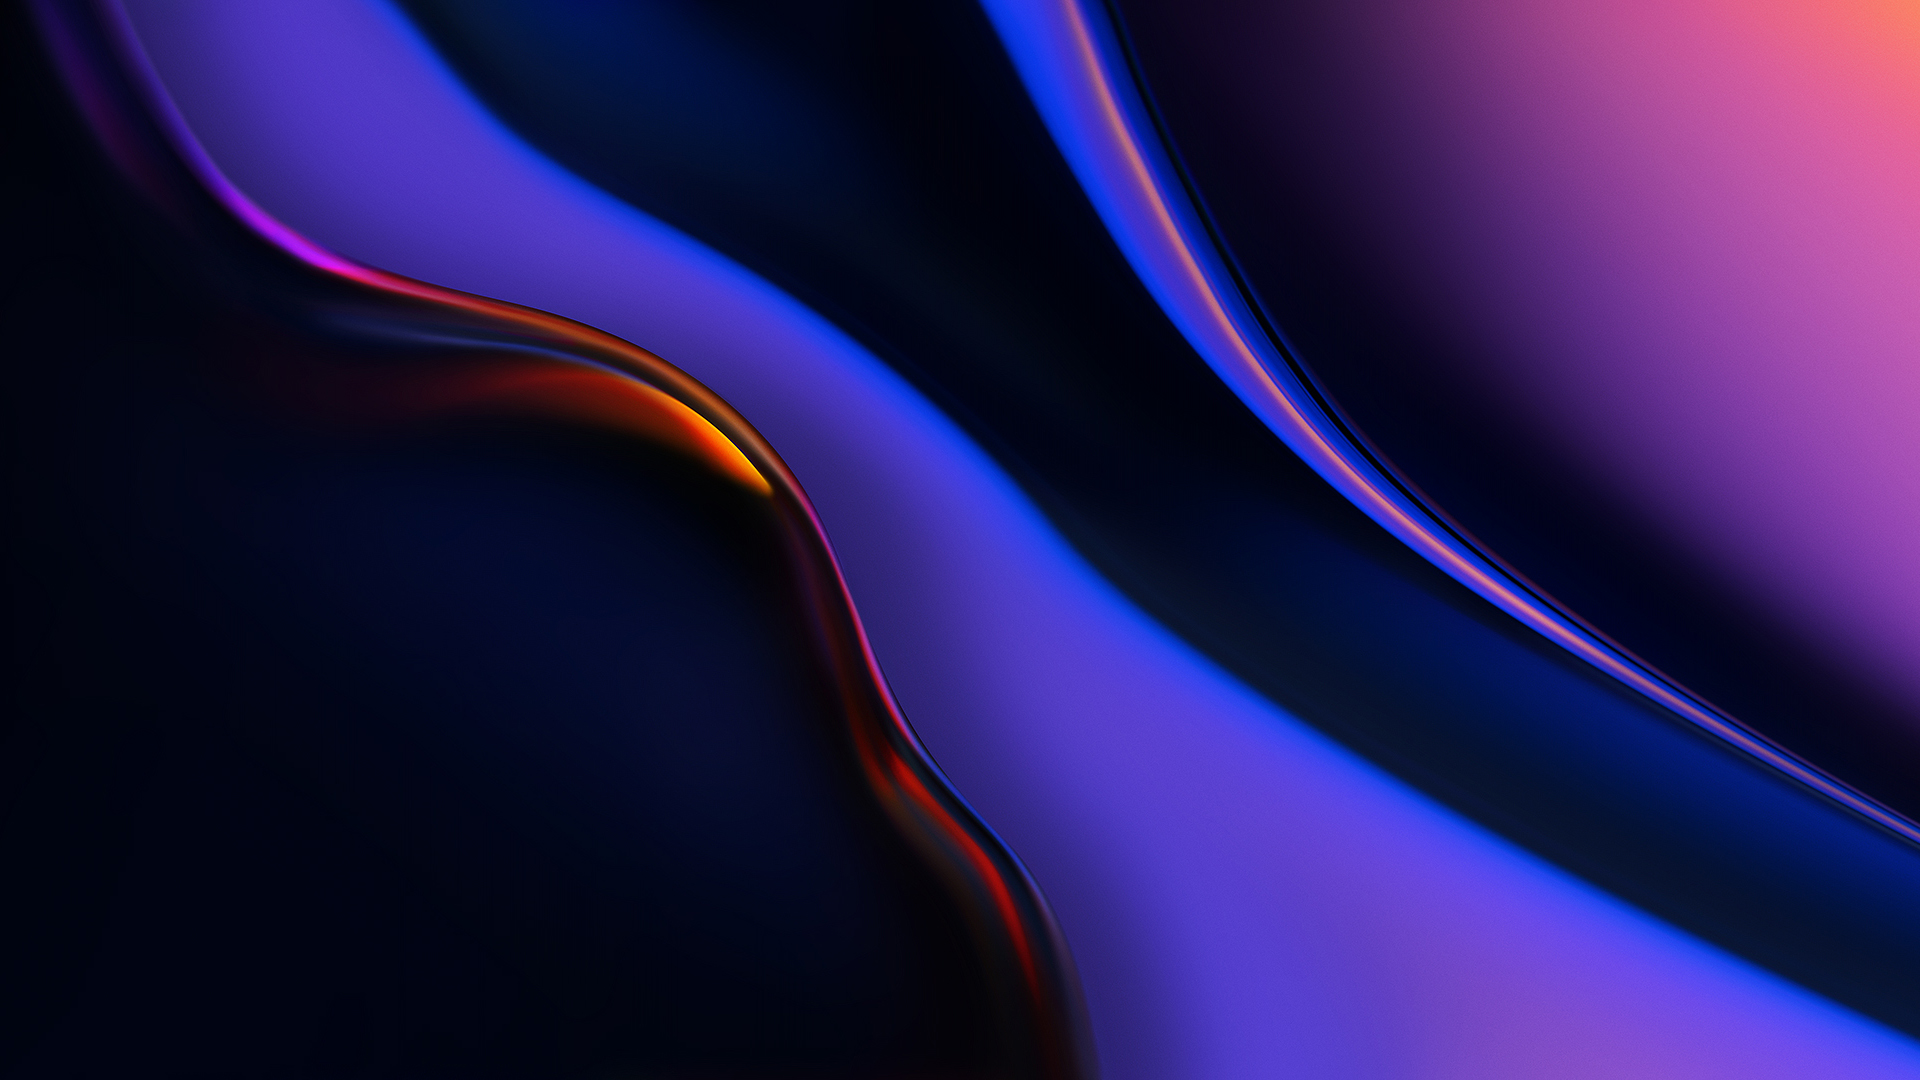 Iphone 5s Stock Wallpaper Colorful Abstract 8k Wallpapers Hd Wallpapers